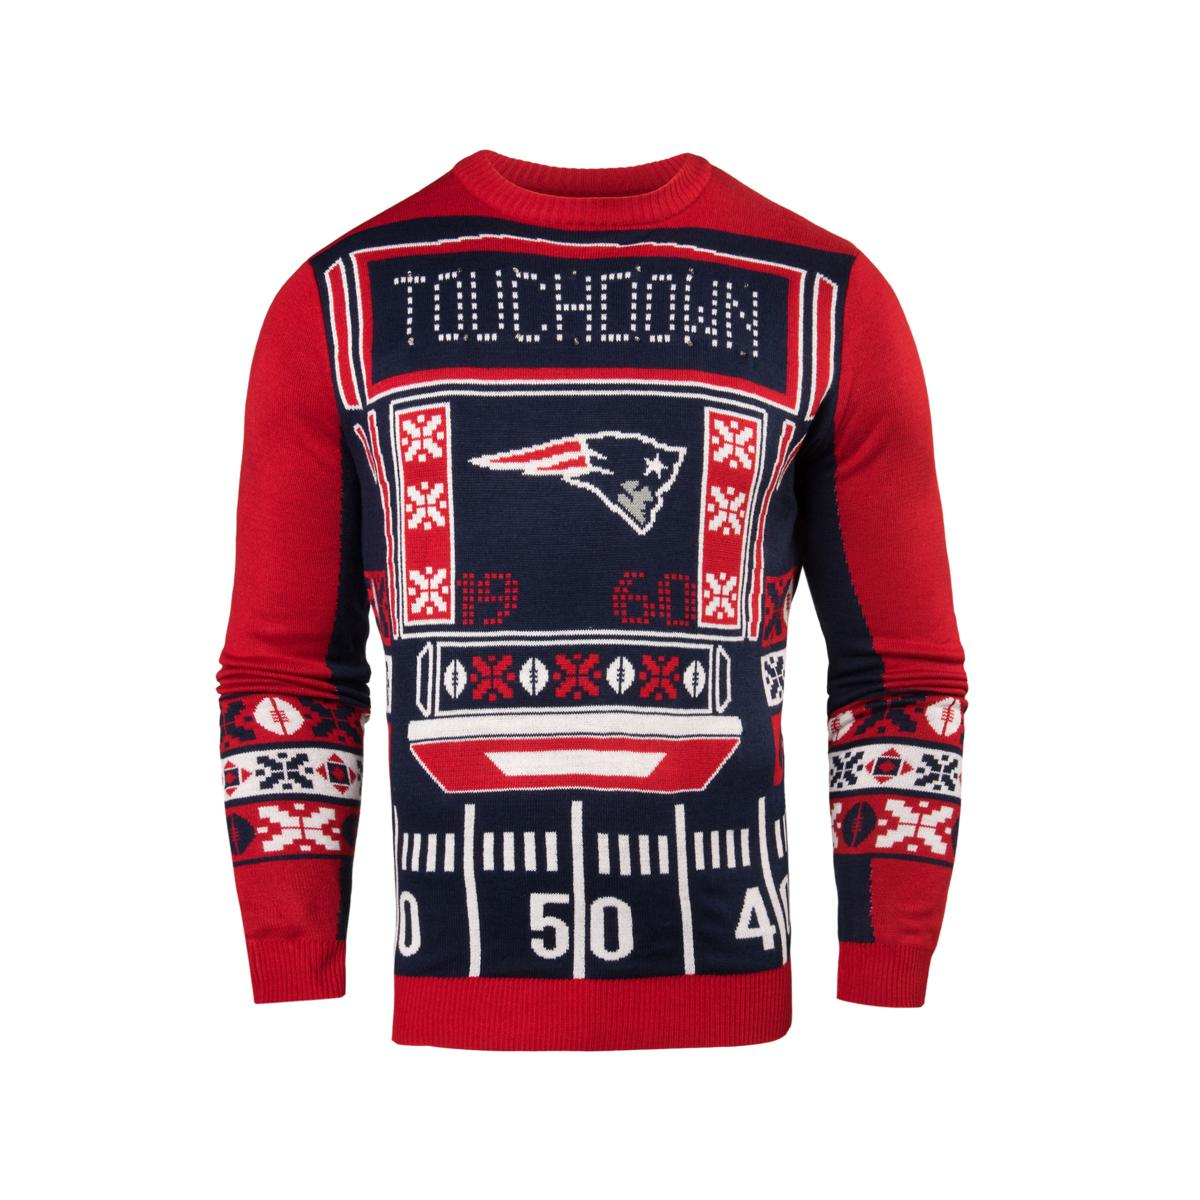 Officially Licensed NFL Light-Up LED Ugly Sweater by Forever ...